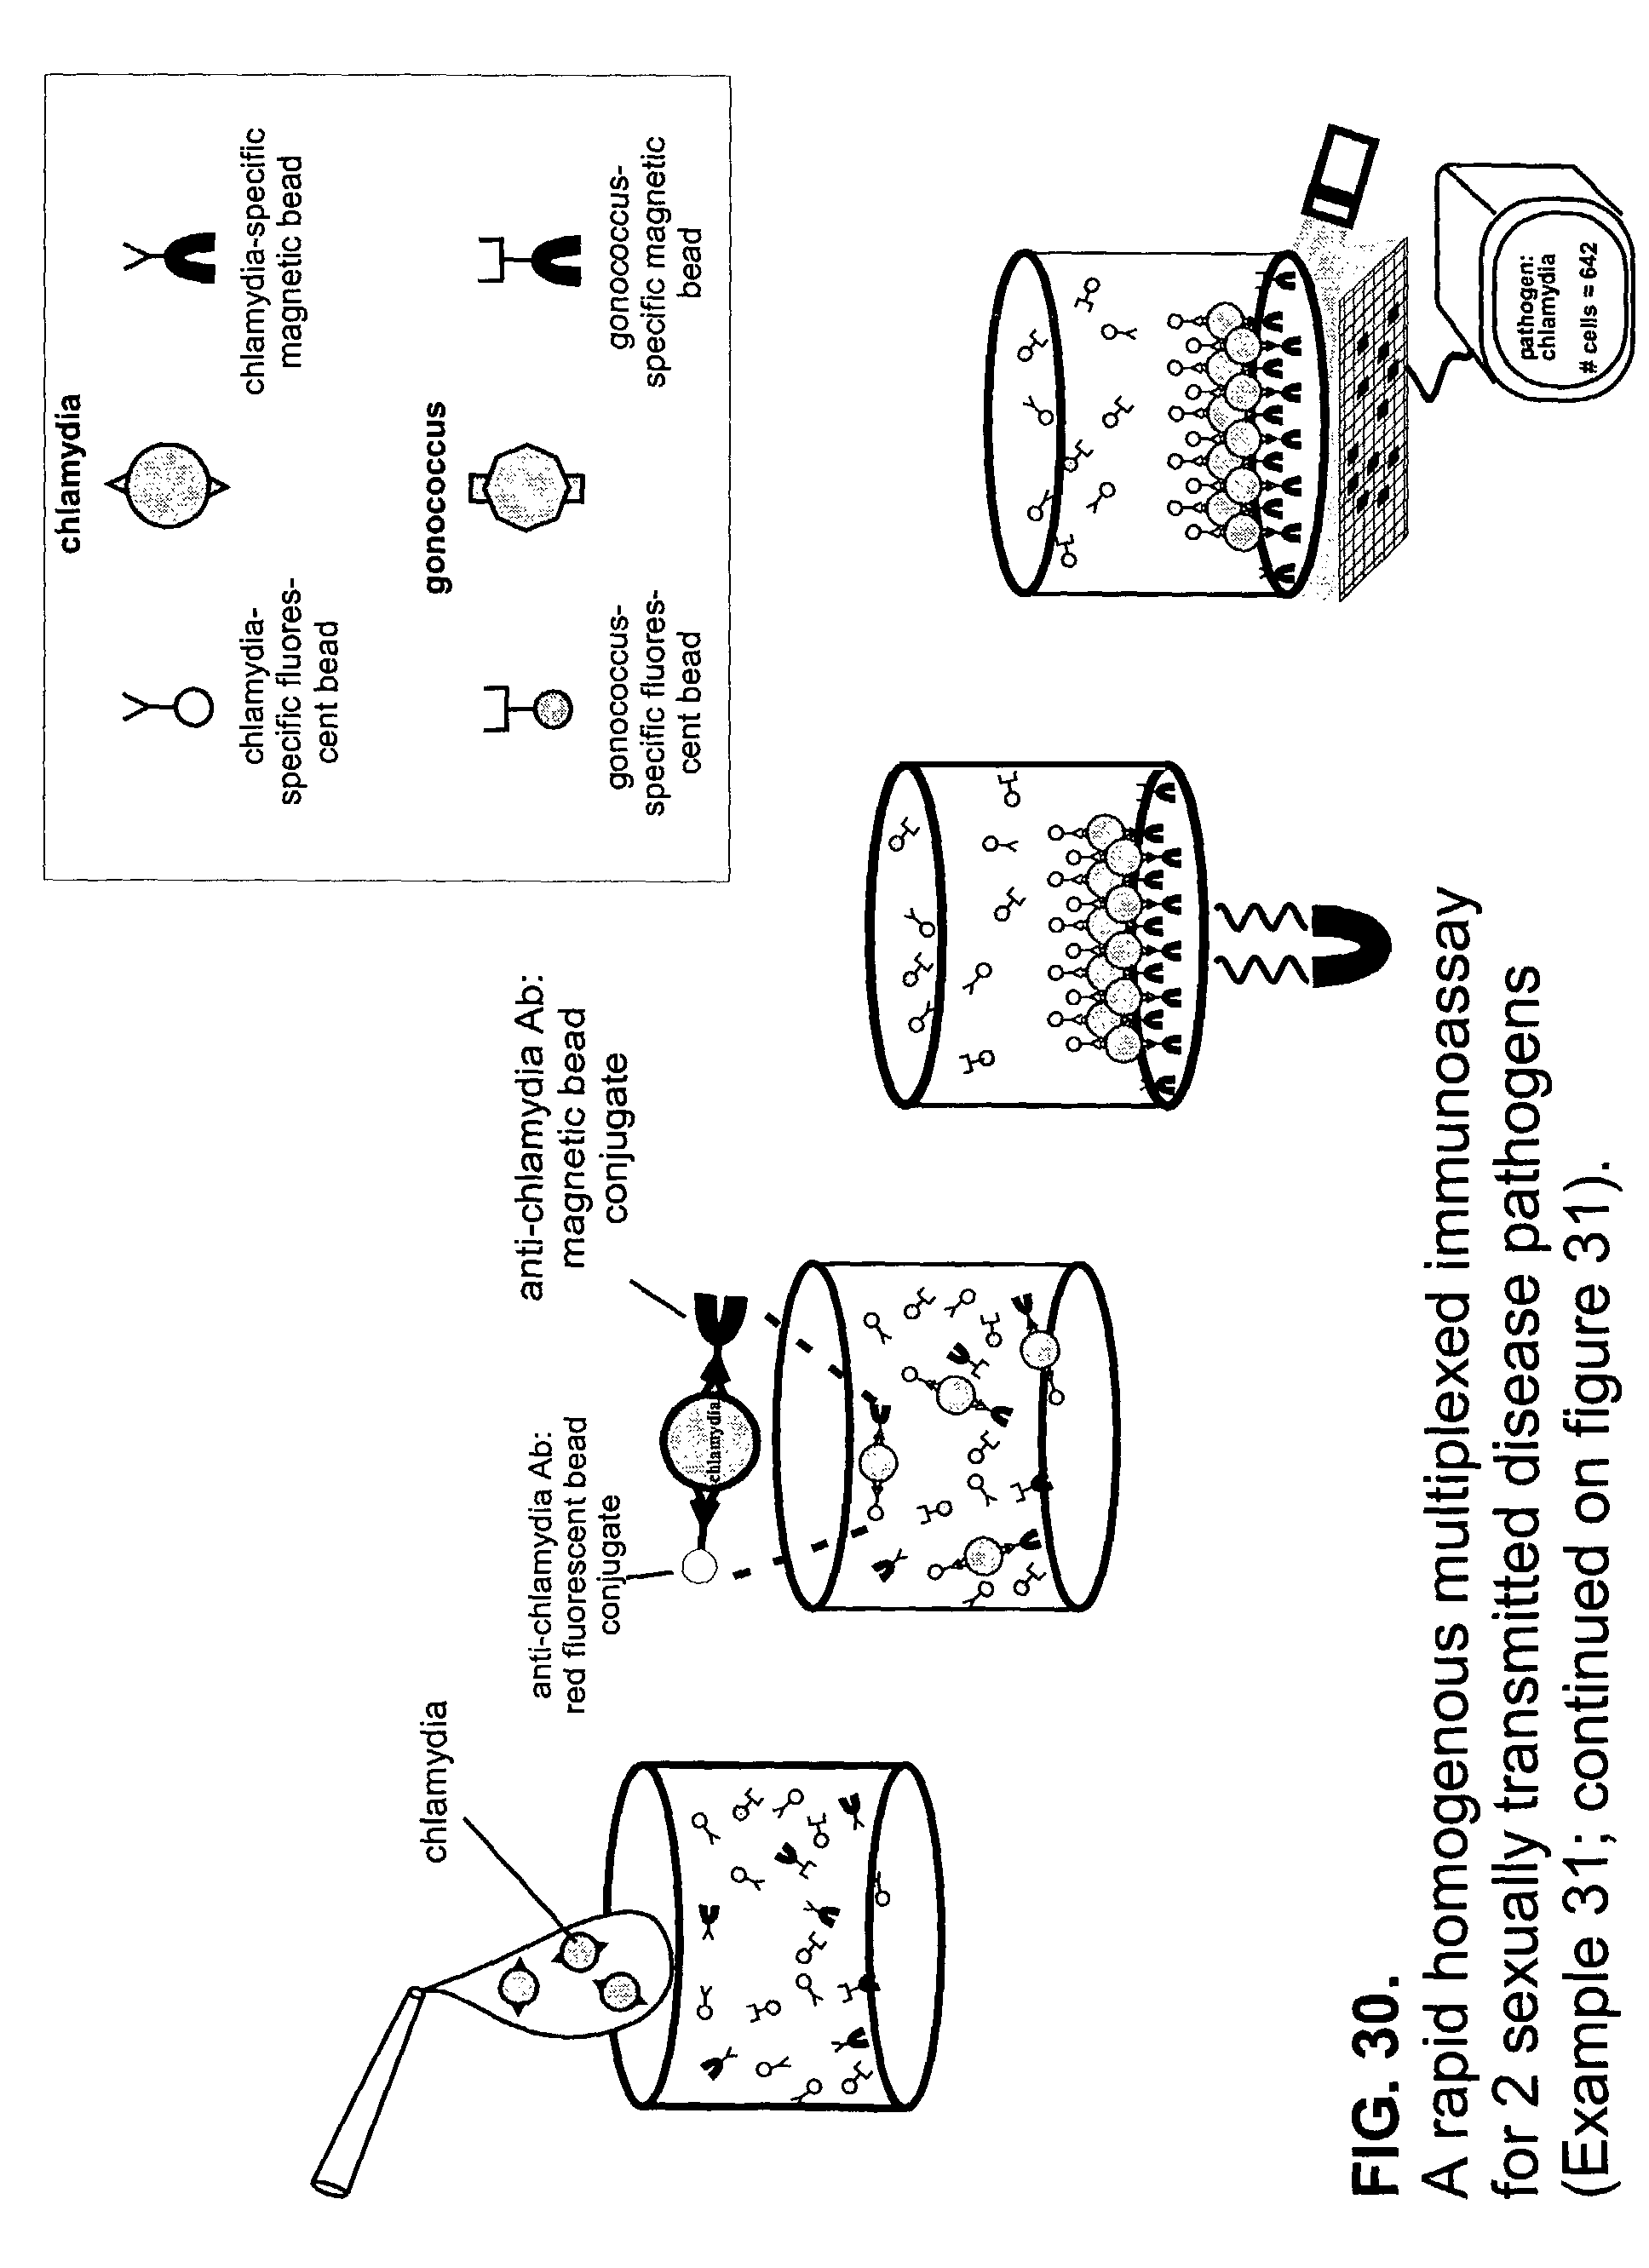 diagram of cell culture steps